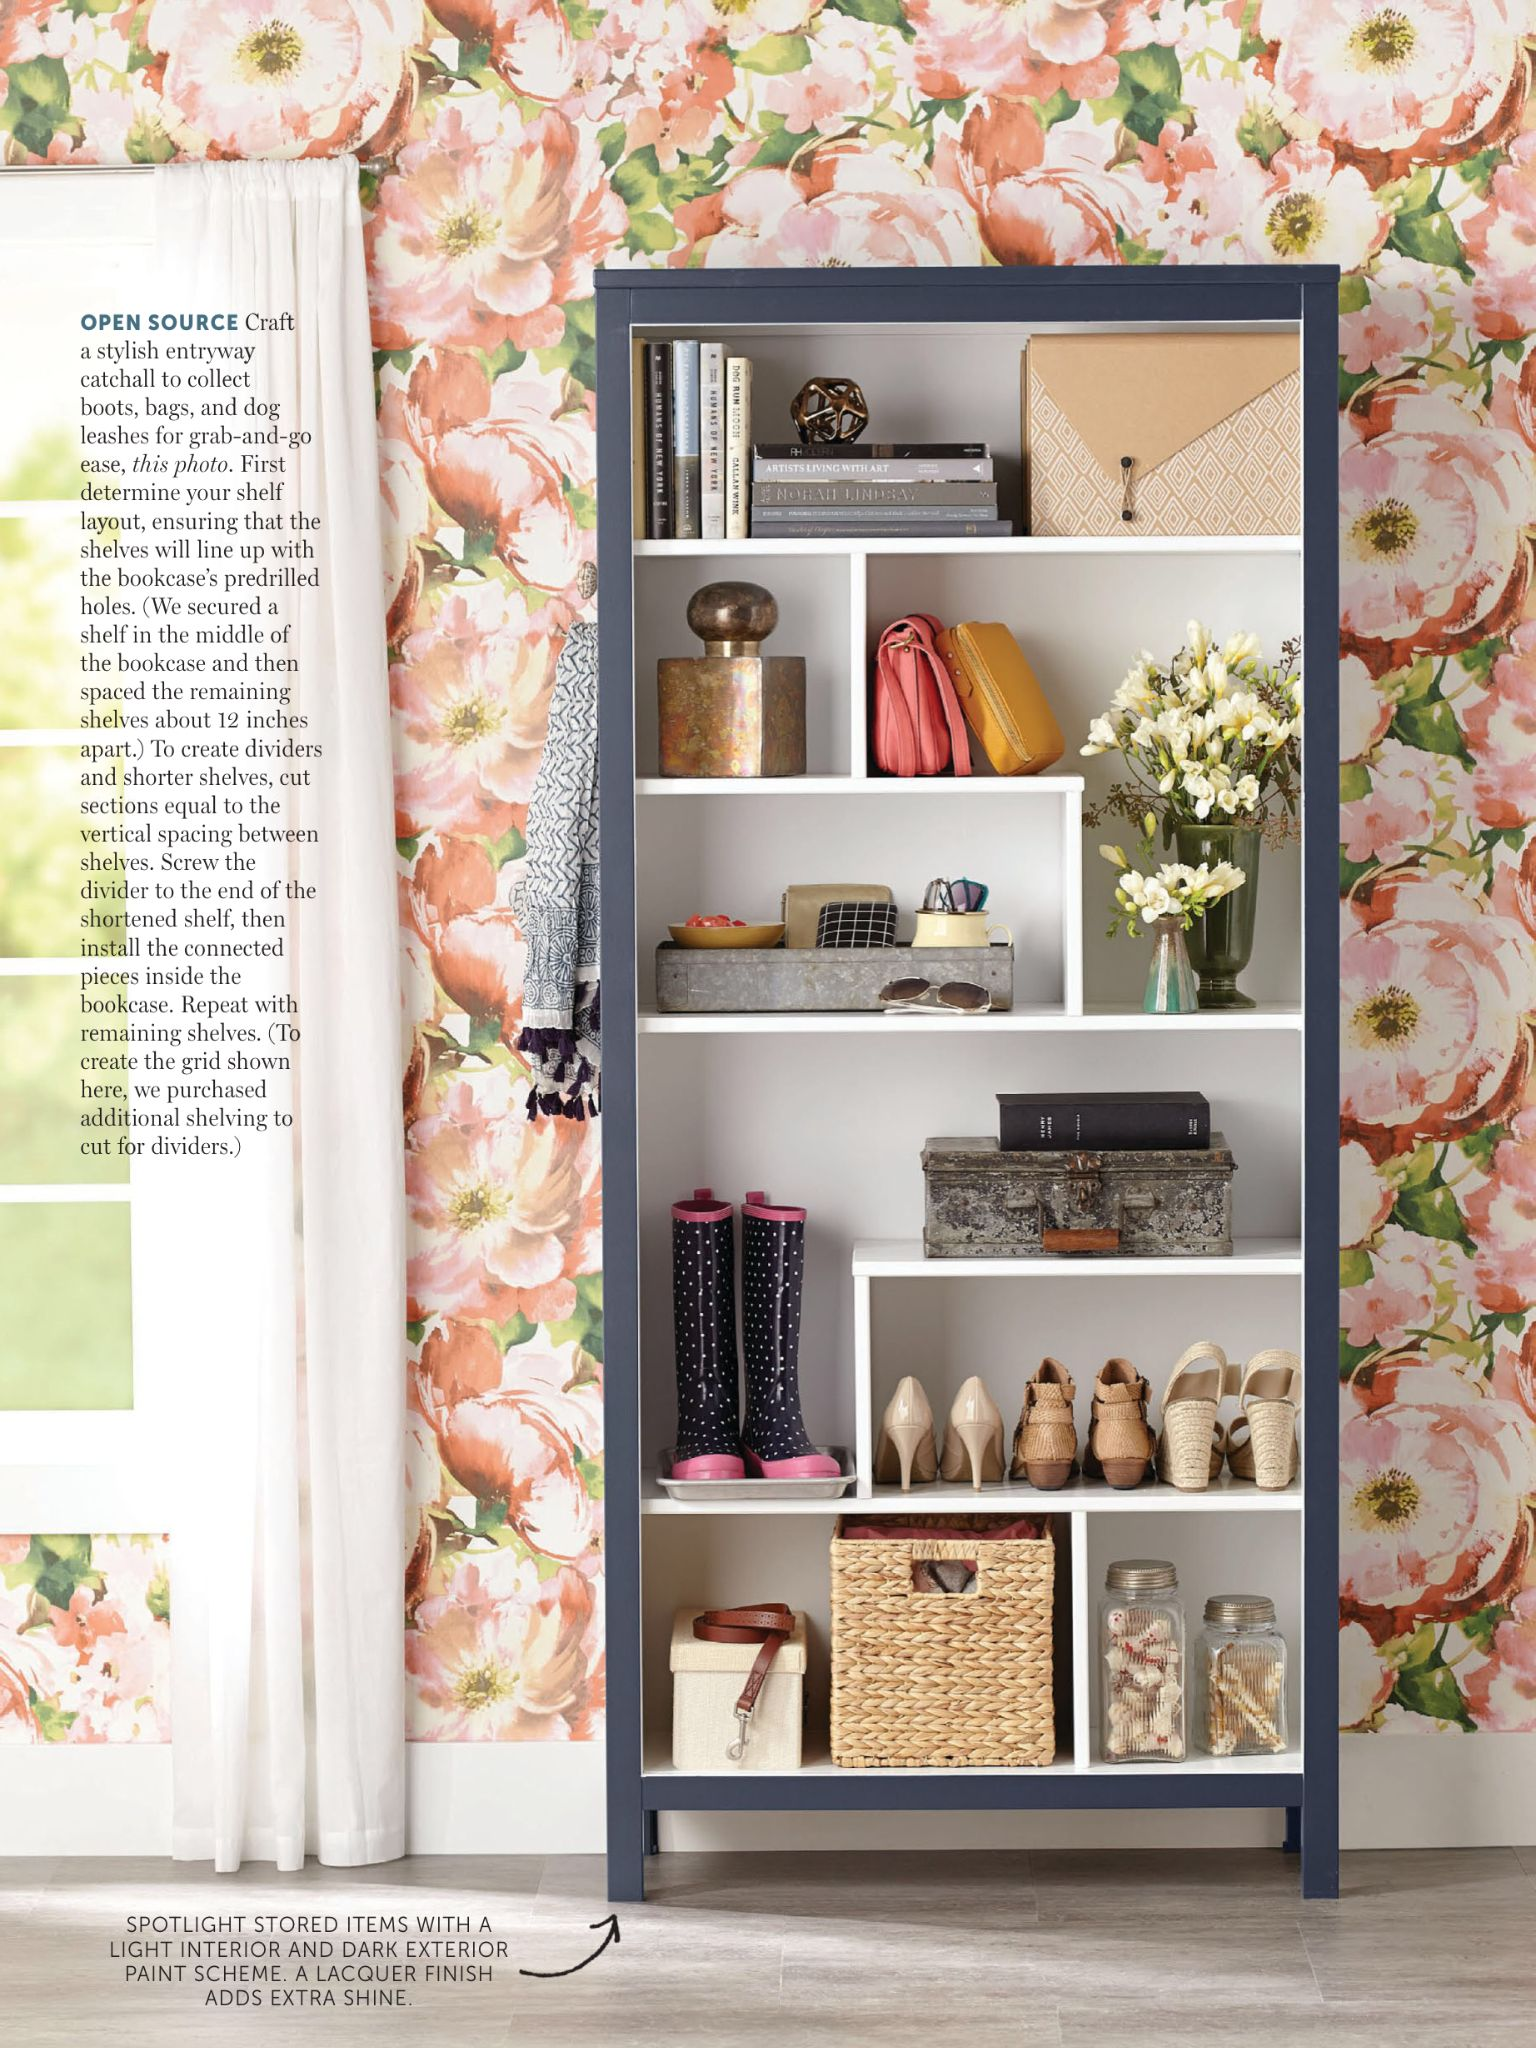 Shelf life from do it yourself magazine winter 2018 read it on shelf life from do it yourself magazine winter 2018 read solutioingenieria Gallery